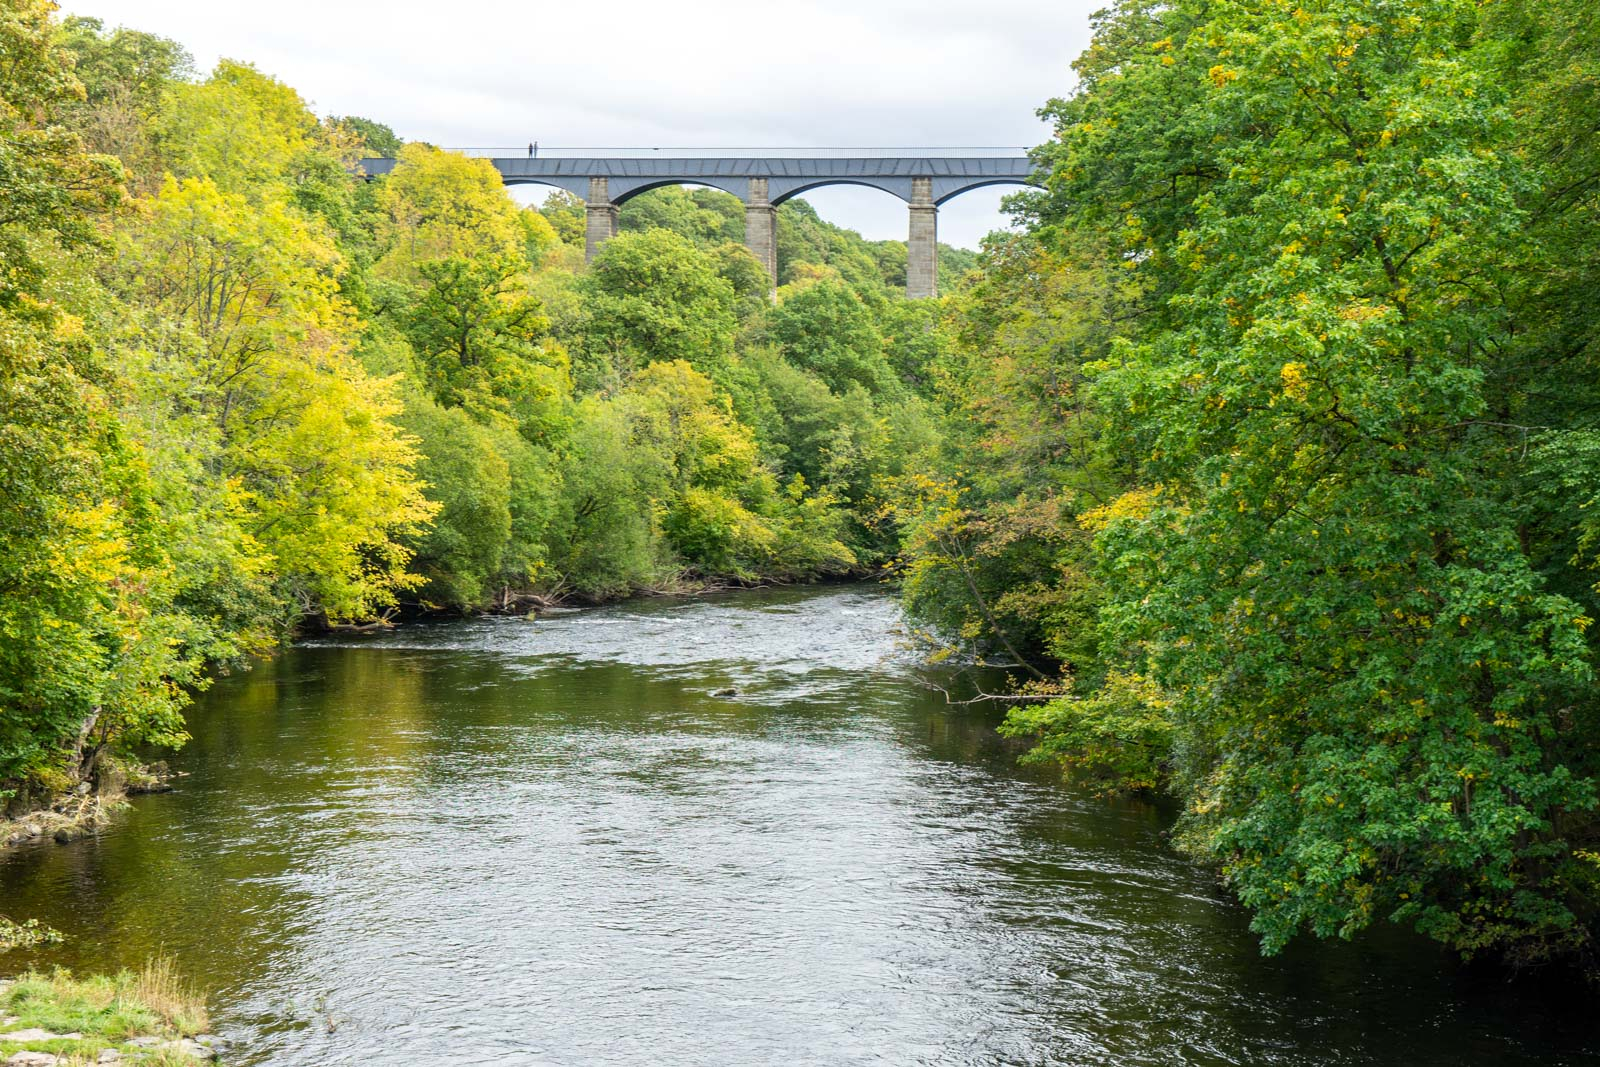 Llangollen Canal and the Pontcysyllte Aqueduct, Wales